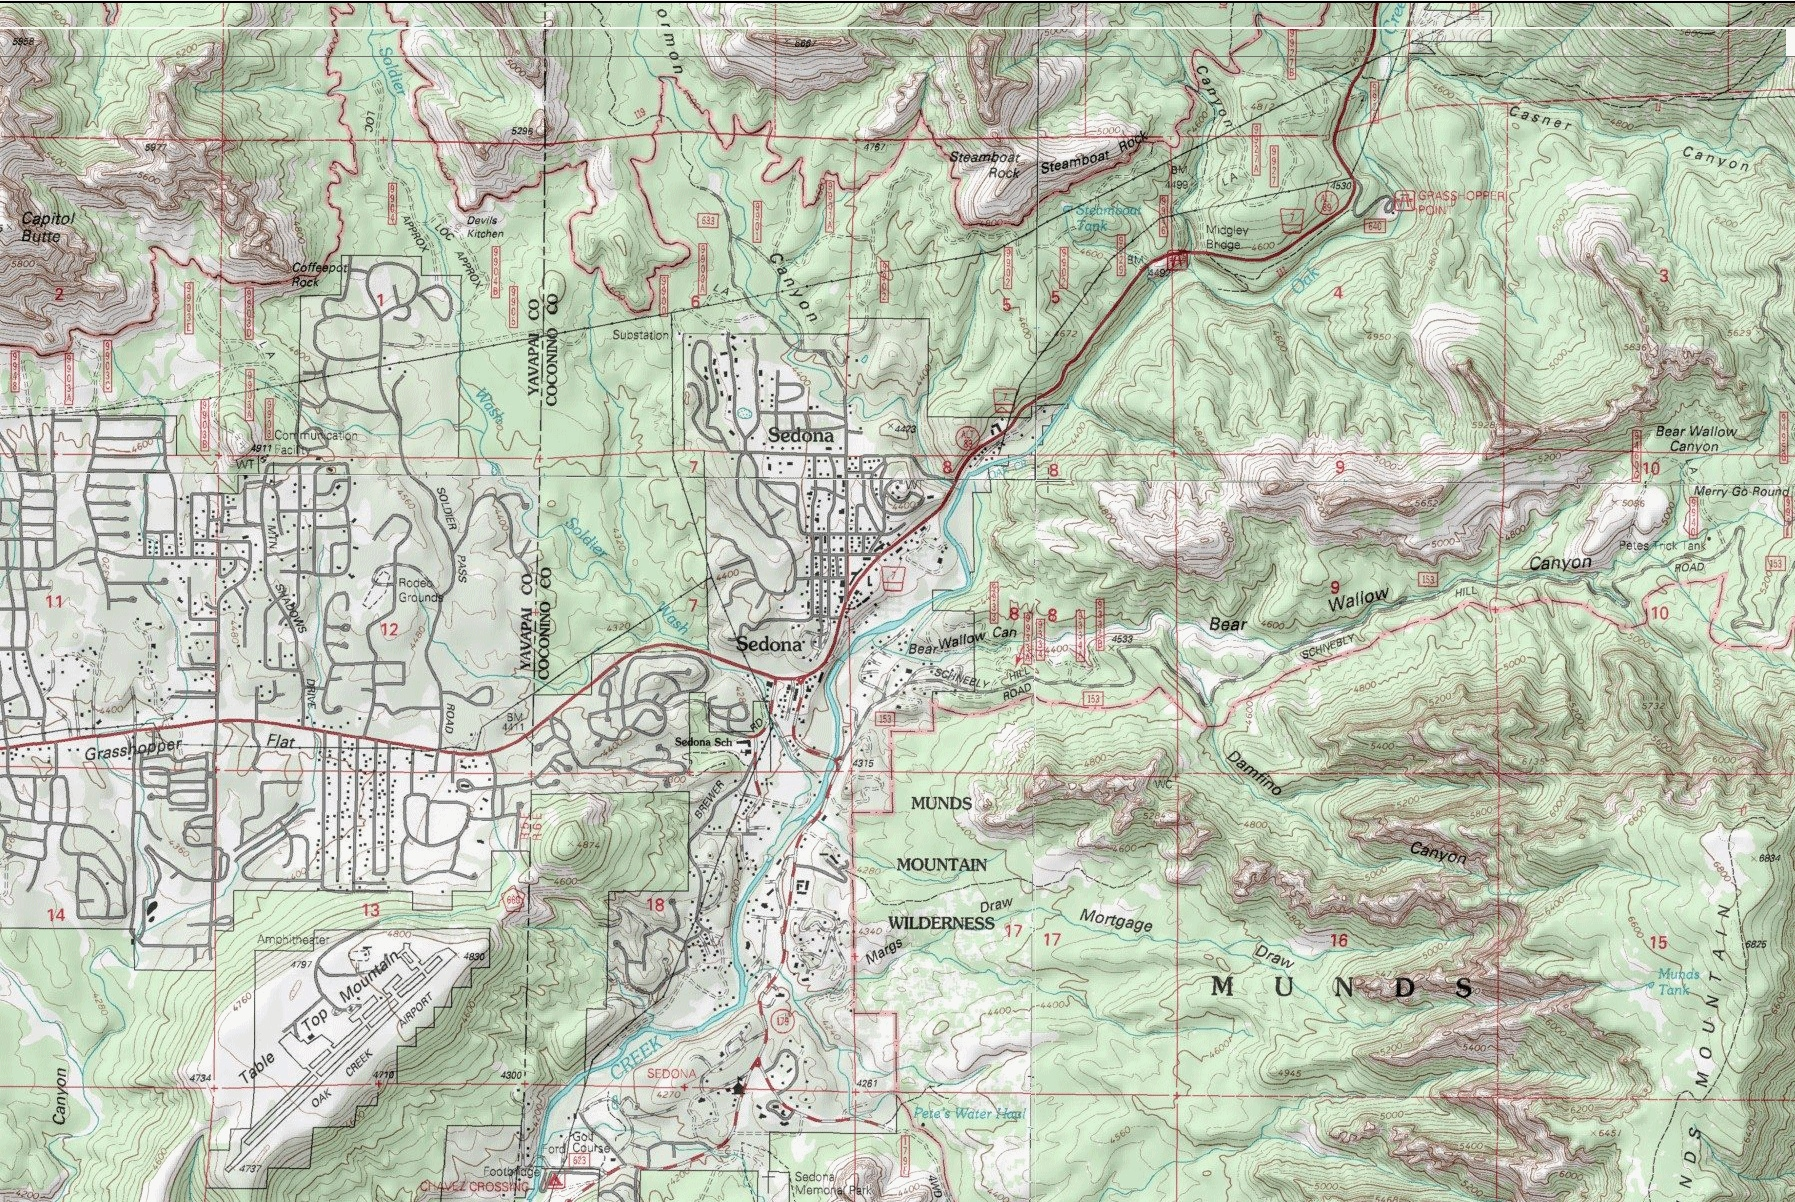 Topographic Map of Area - CLICK to go to interactive map to explore area